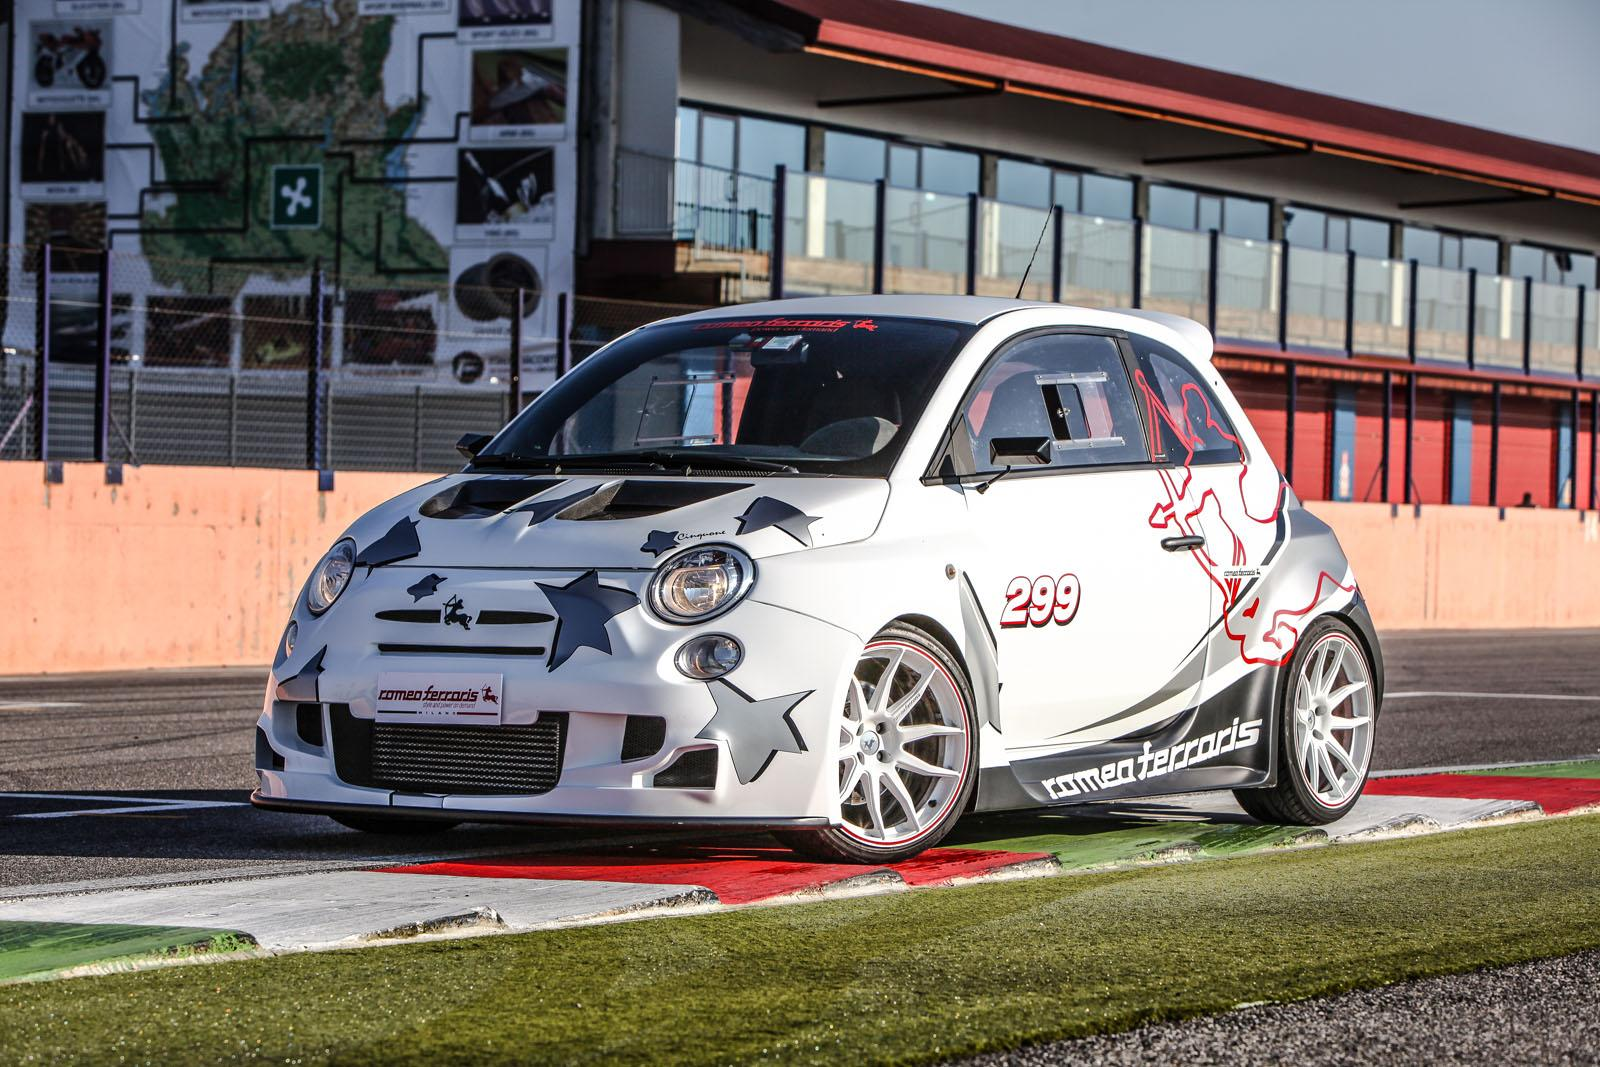 244 Hp Abarth 500 Cinquone Corsa By Romeo Ferraris Is